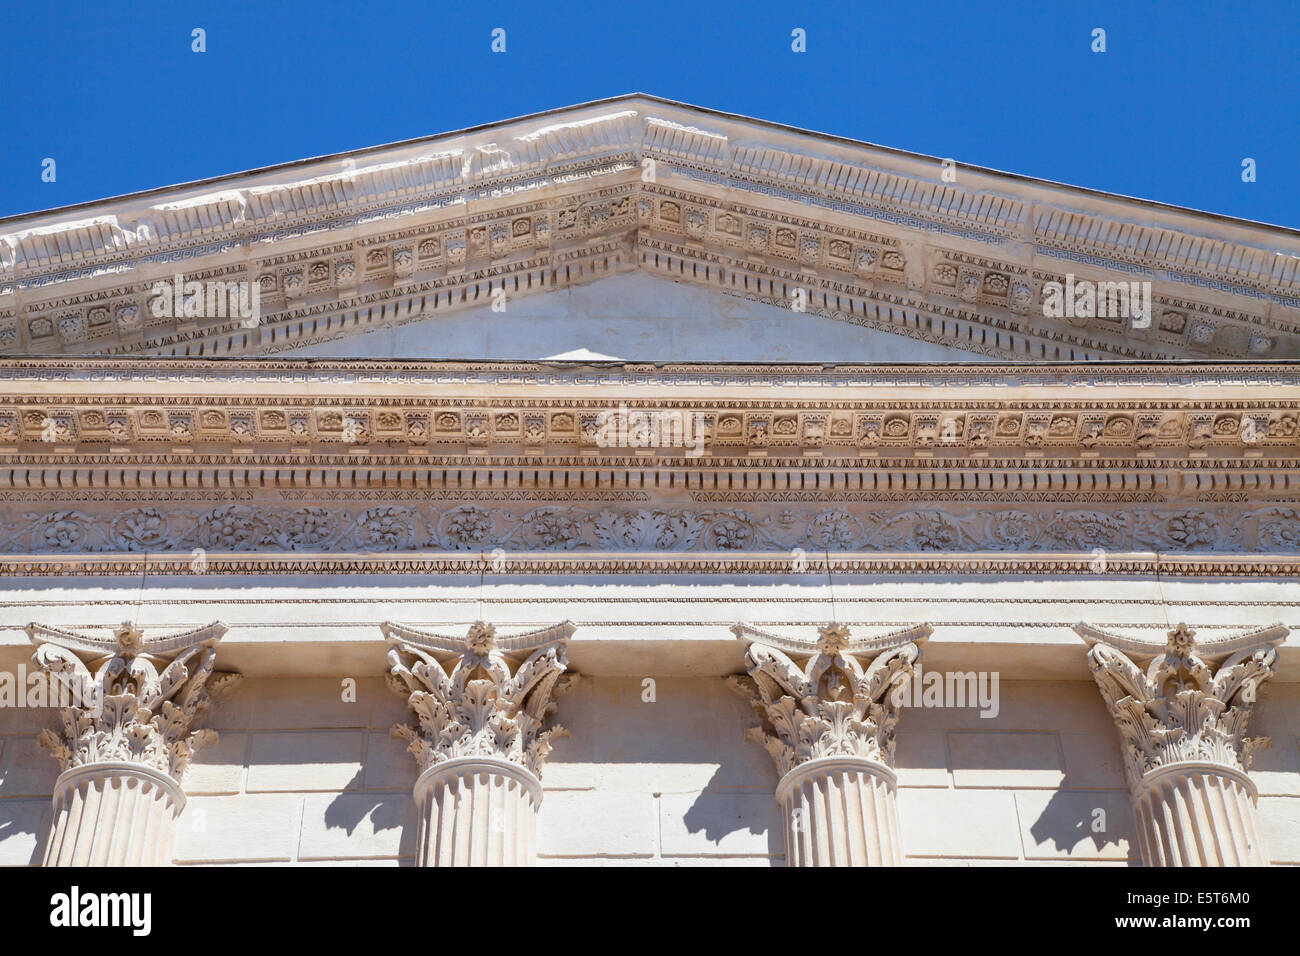 Pediment and Corinthian capitals of the Maison Carree, Nimes, France. - Stock Image